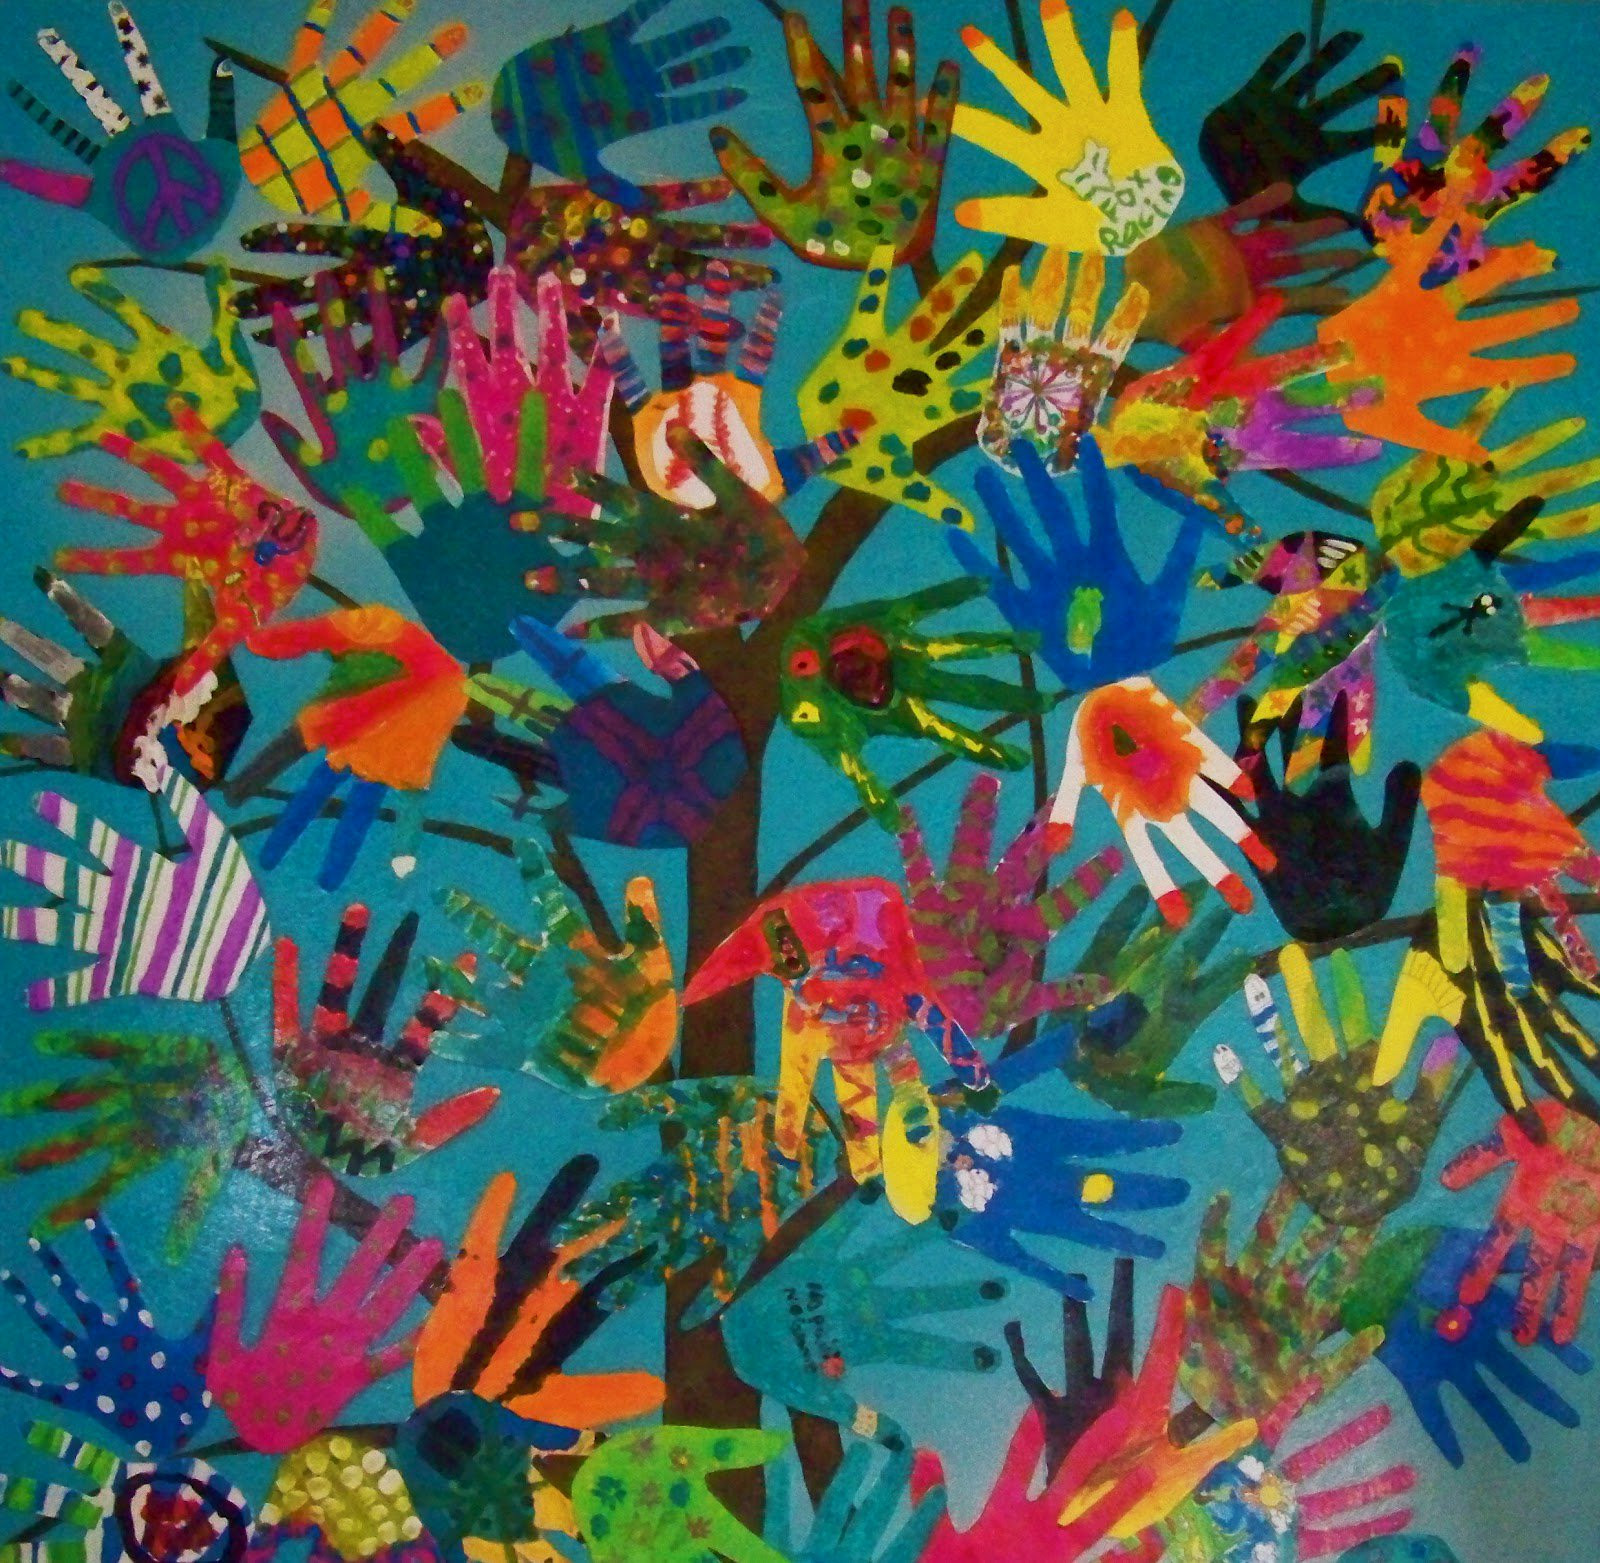 Best ideas about Group Art Project For Kids . Save or Pin Three Reasons Why Everyone Should Take an Ethnic Stu s Now.